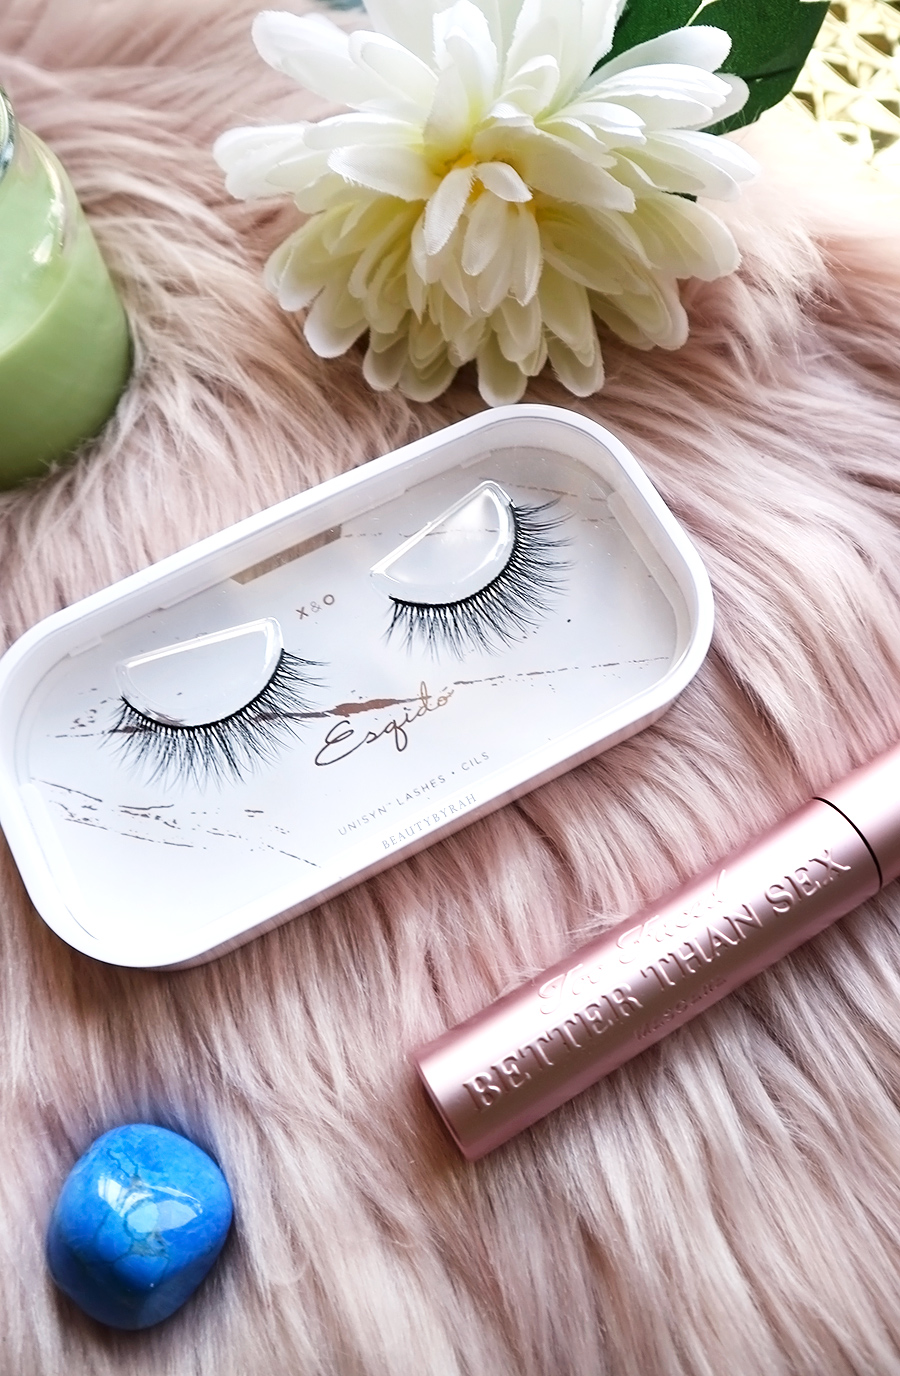 X&O Unisyn Esquido Lashes review